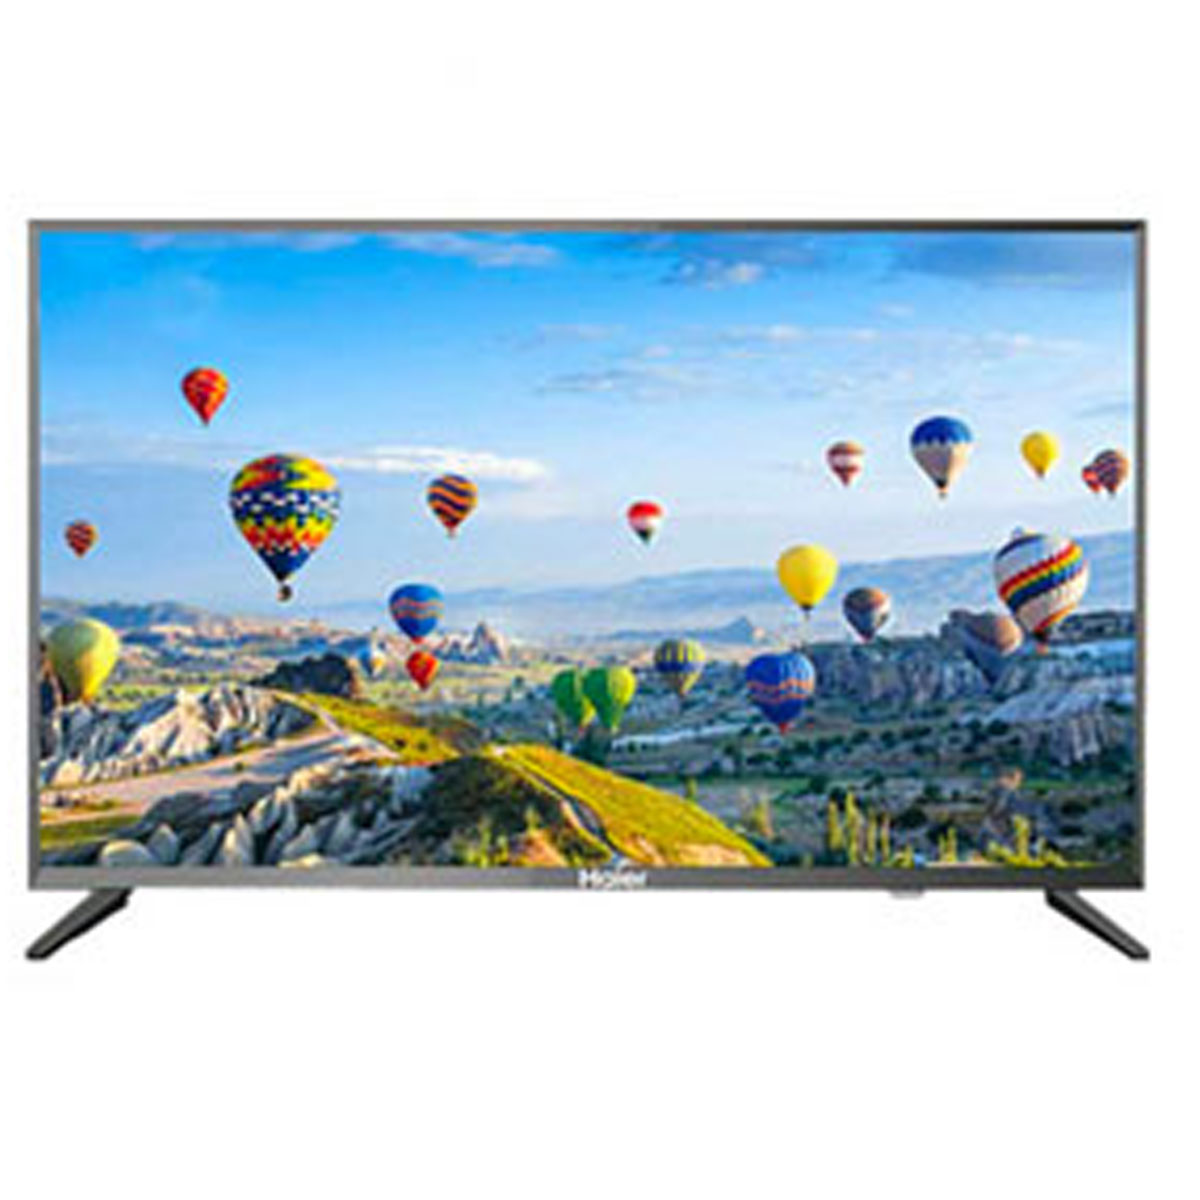 Haier 40 Inch Smart HD LED TV (LE40K6600G)